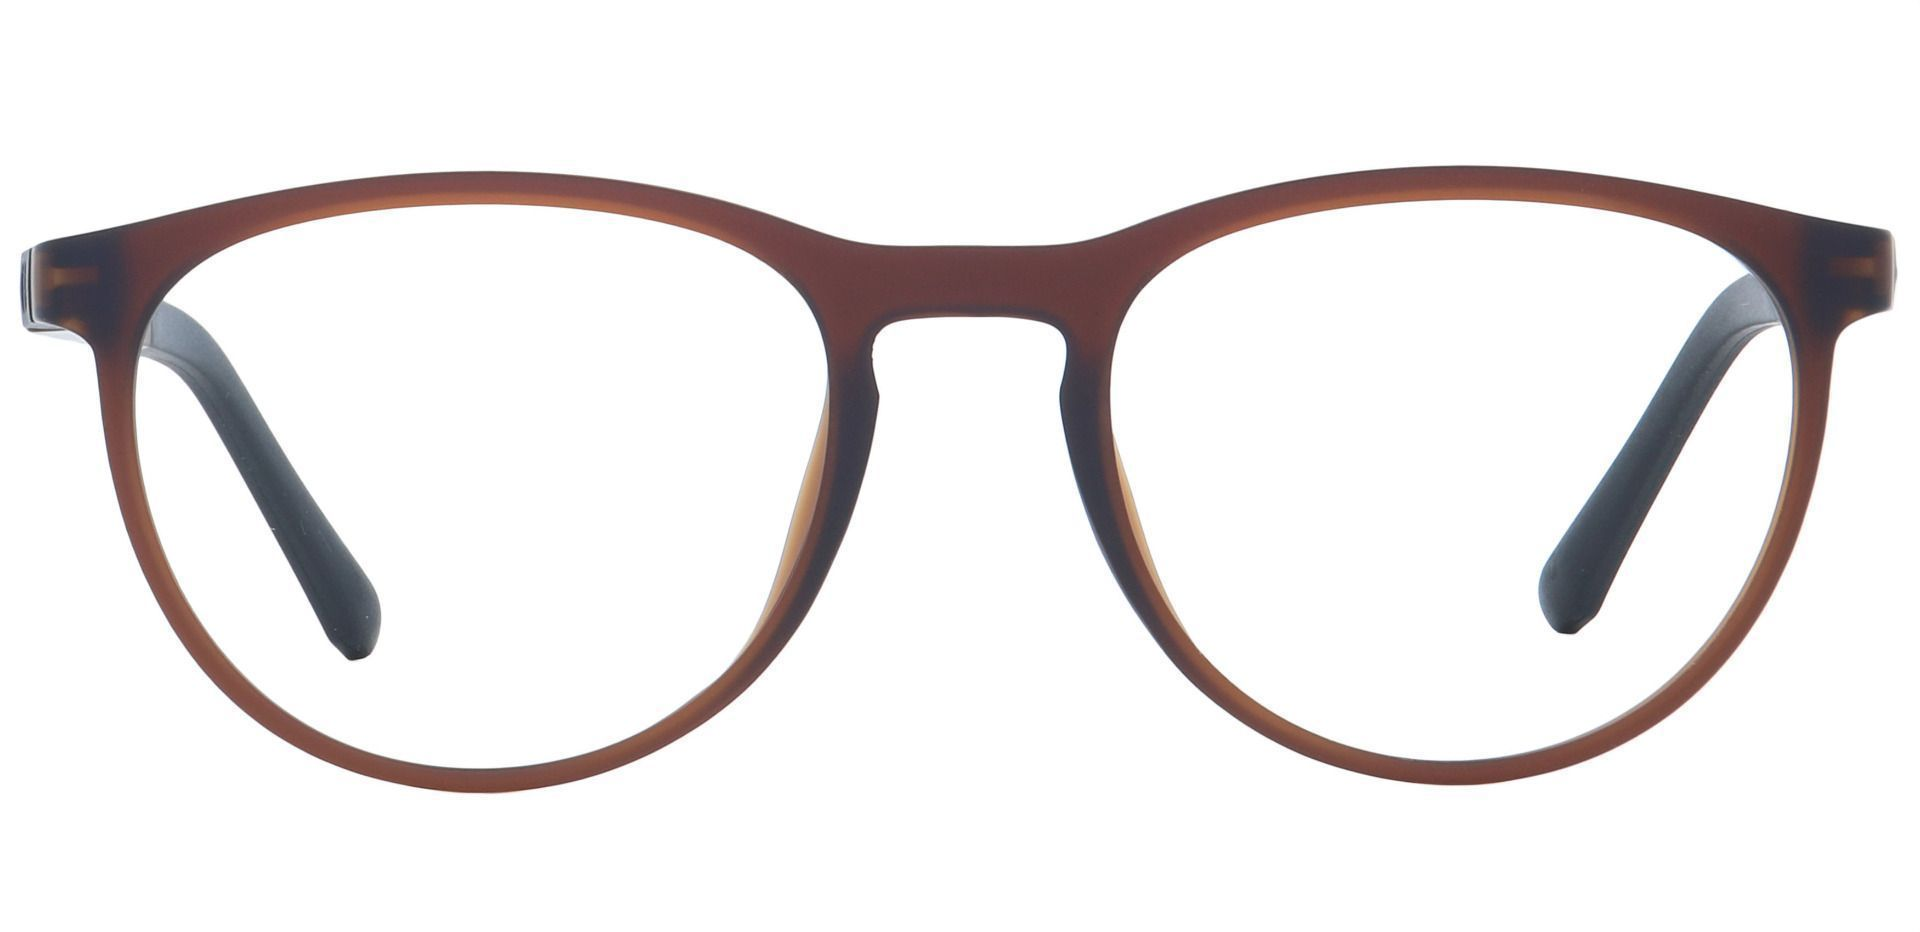 Heidi Round Prescription Glasses - Matte Rootbeer